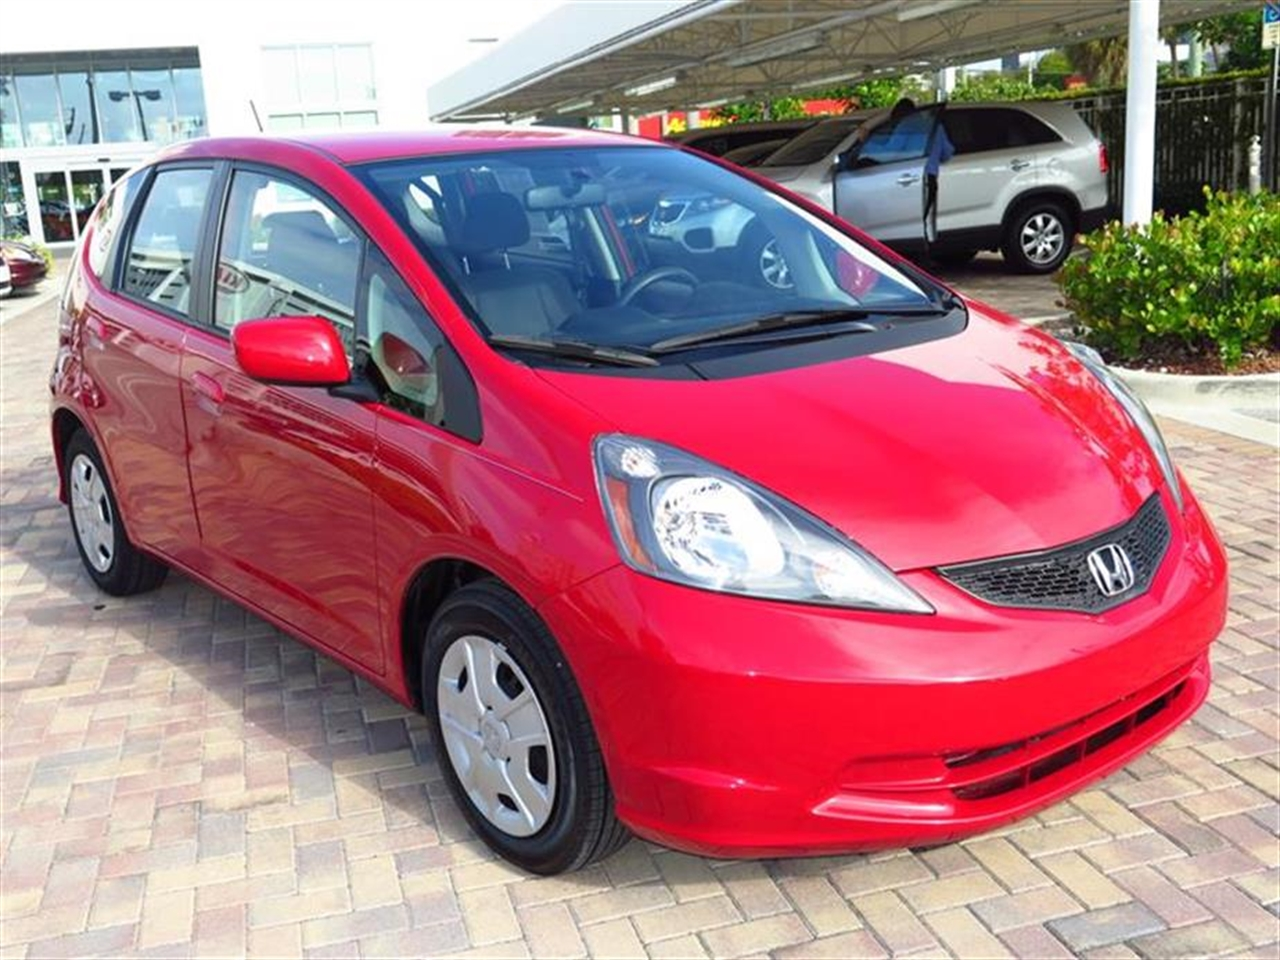 2012 HONDA FIT 5dr HB Auto 37452 miles 10 cup holders 2 cargo area tie-down anchors 12V pwr